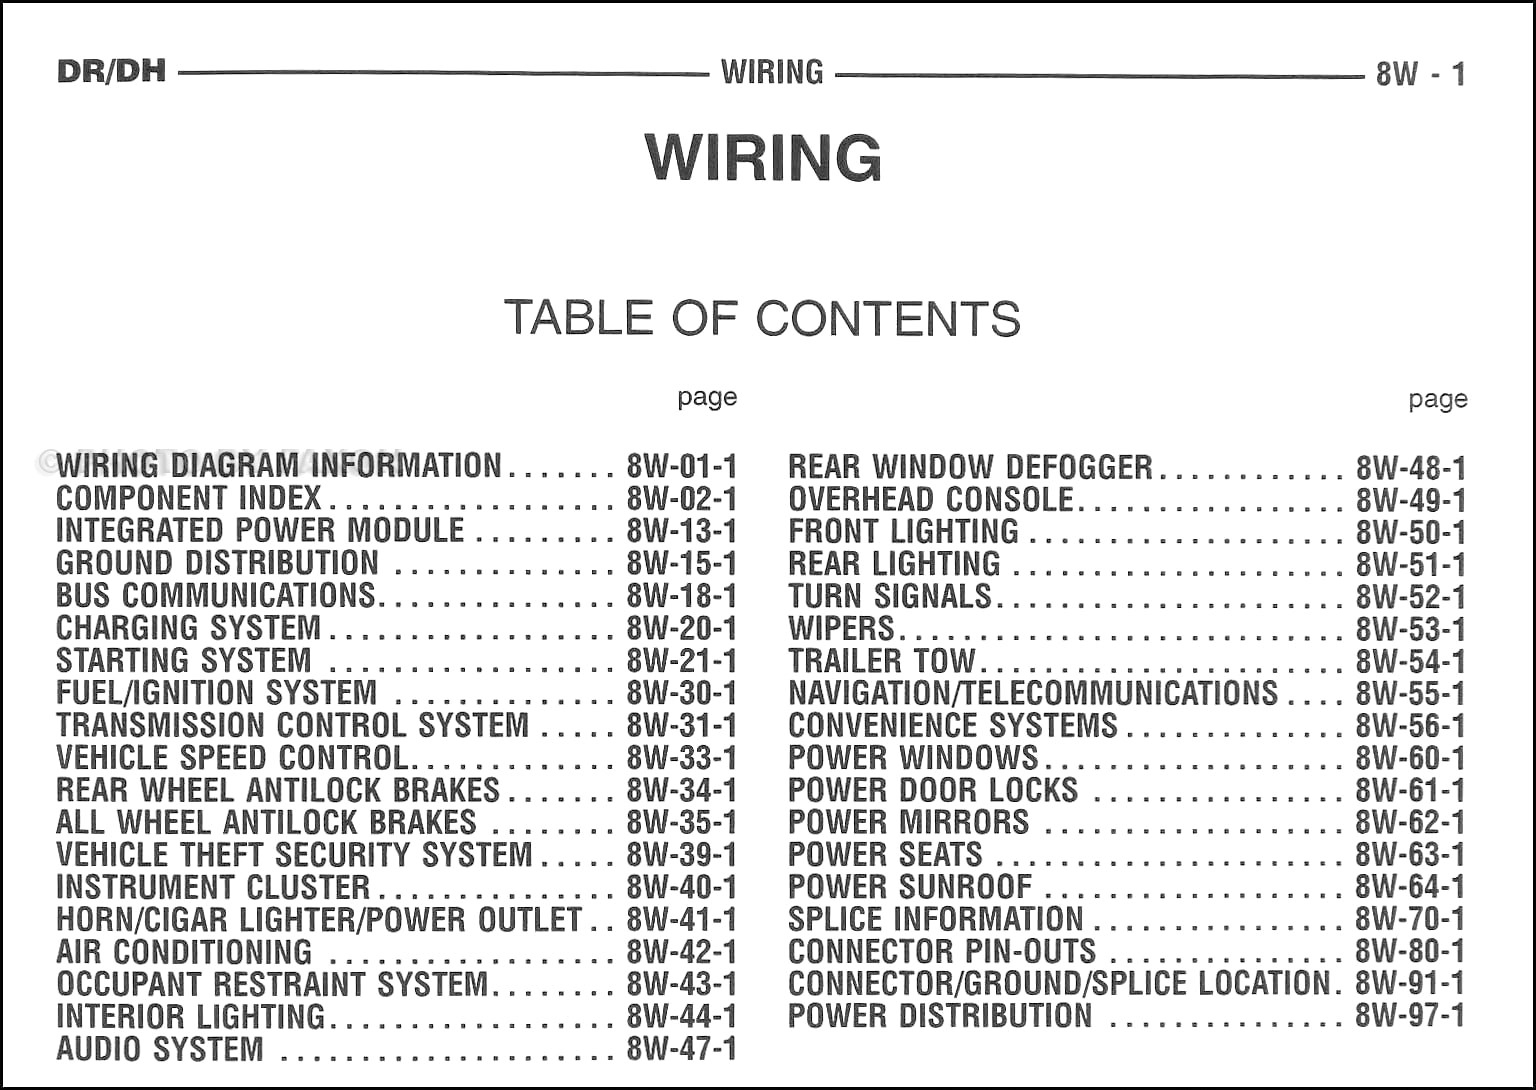 1996 Dodge Ram Trailer Wiring Diagram from static-resources.imageservice.cloud